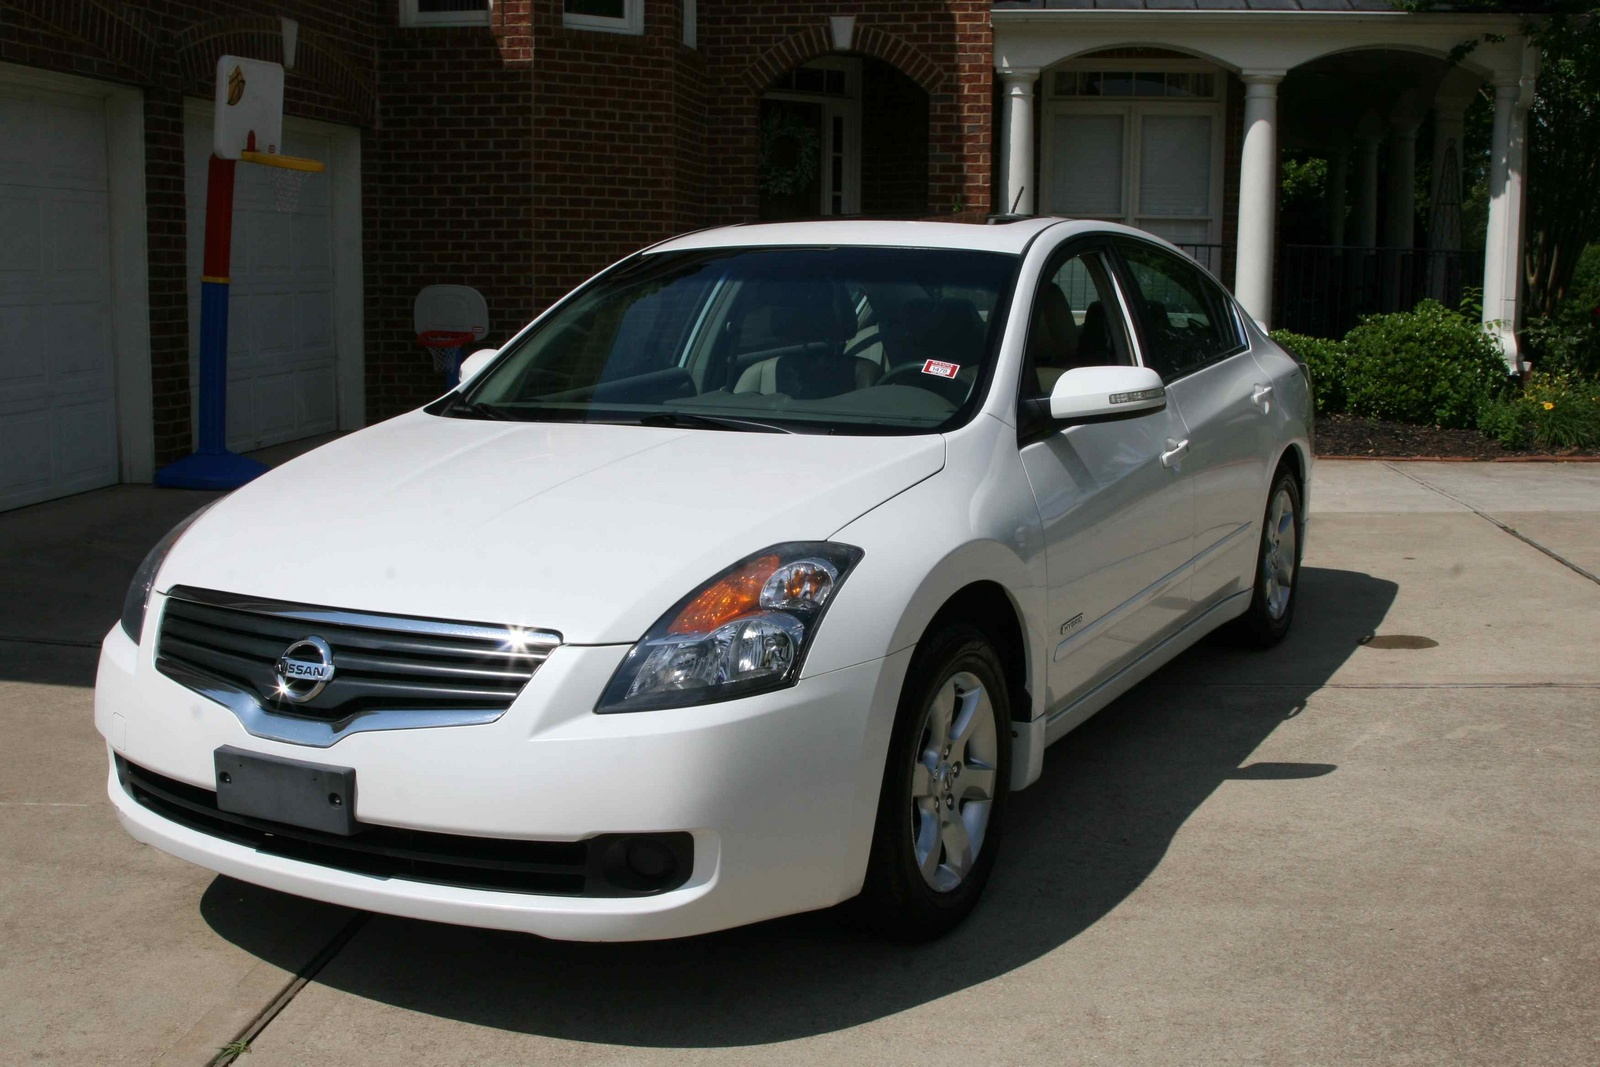 Sentra also 2013 Toyota Prius Color Chart together with 195544 Lexus Ls 4th Gen Paint Codes And Media Archive moreover 2012 Nissan Altima Pictures C22935 pi36365617 in addition Lamborghini Aventador Roadster Chega Em Junho. on 2013 nissan maxima interior